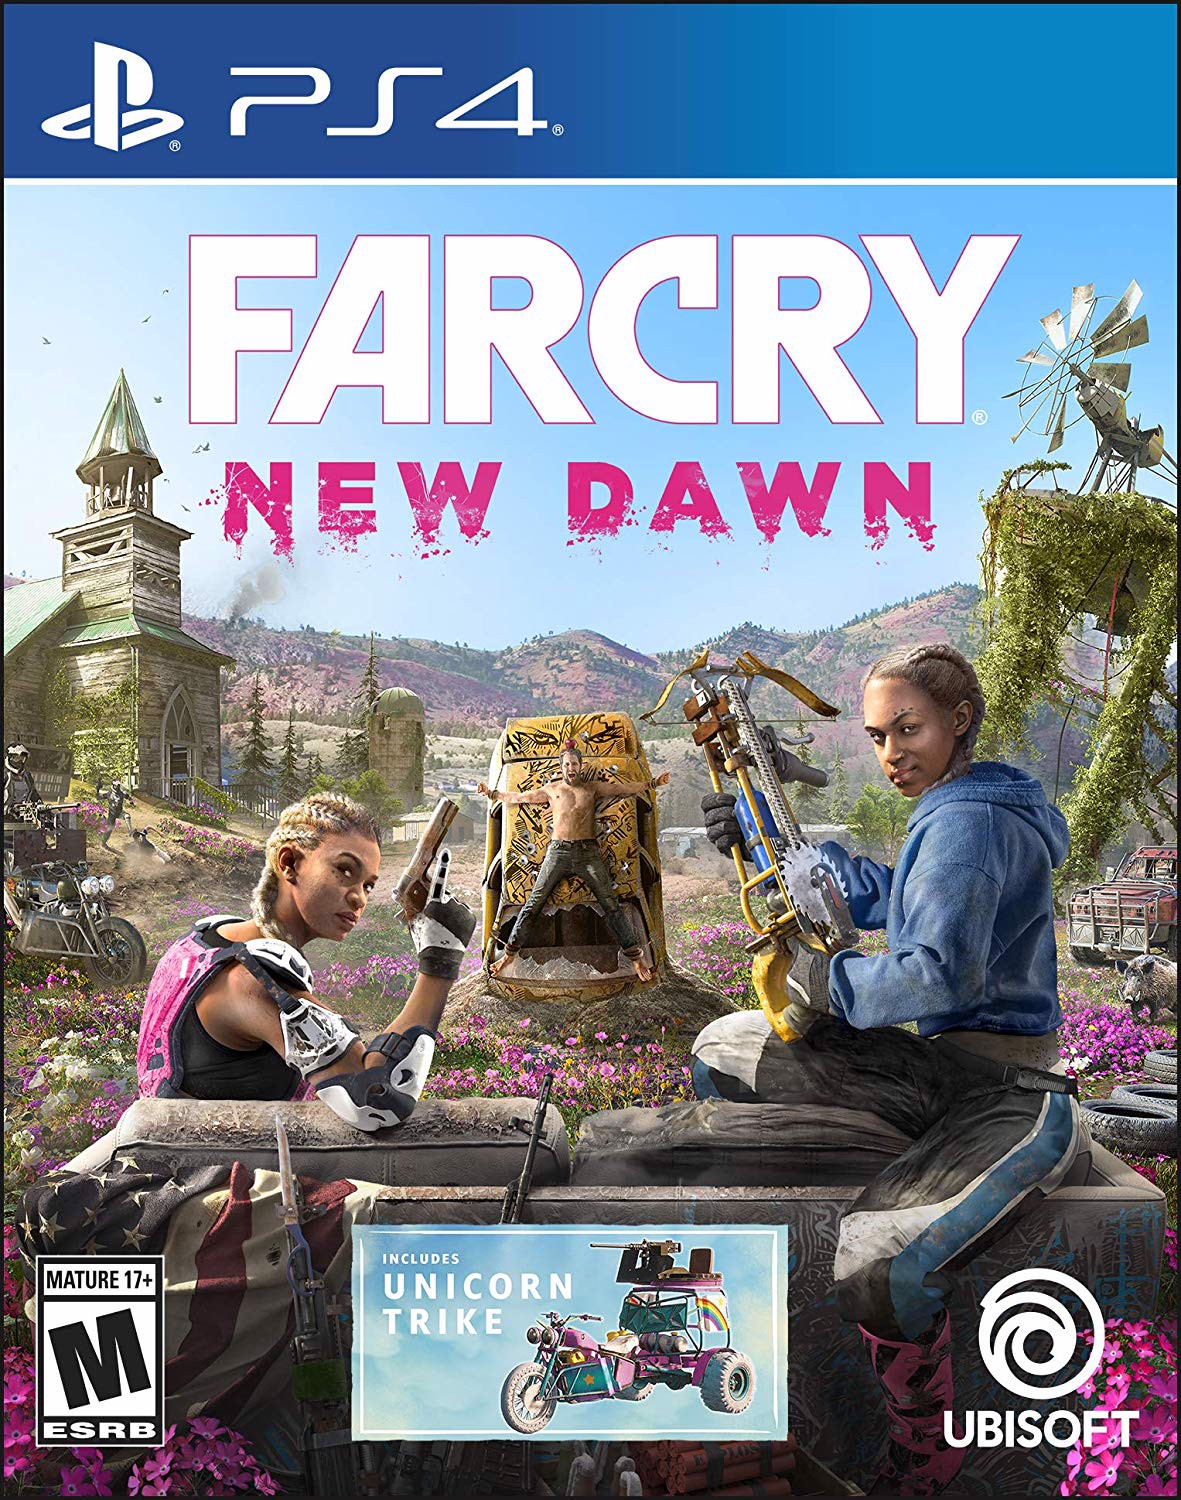 693 - Far Cry New Dawn